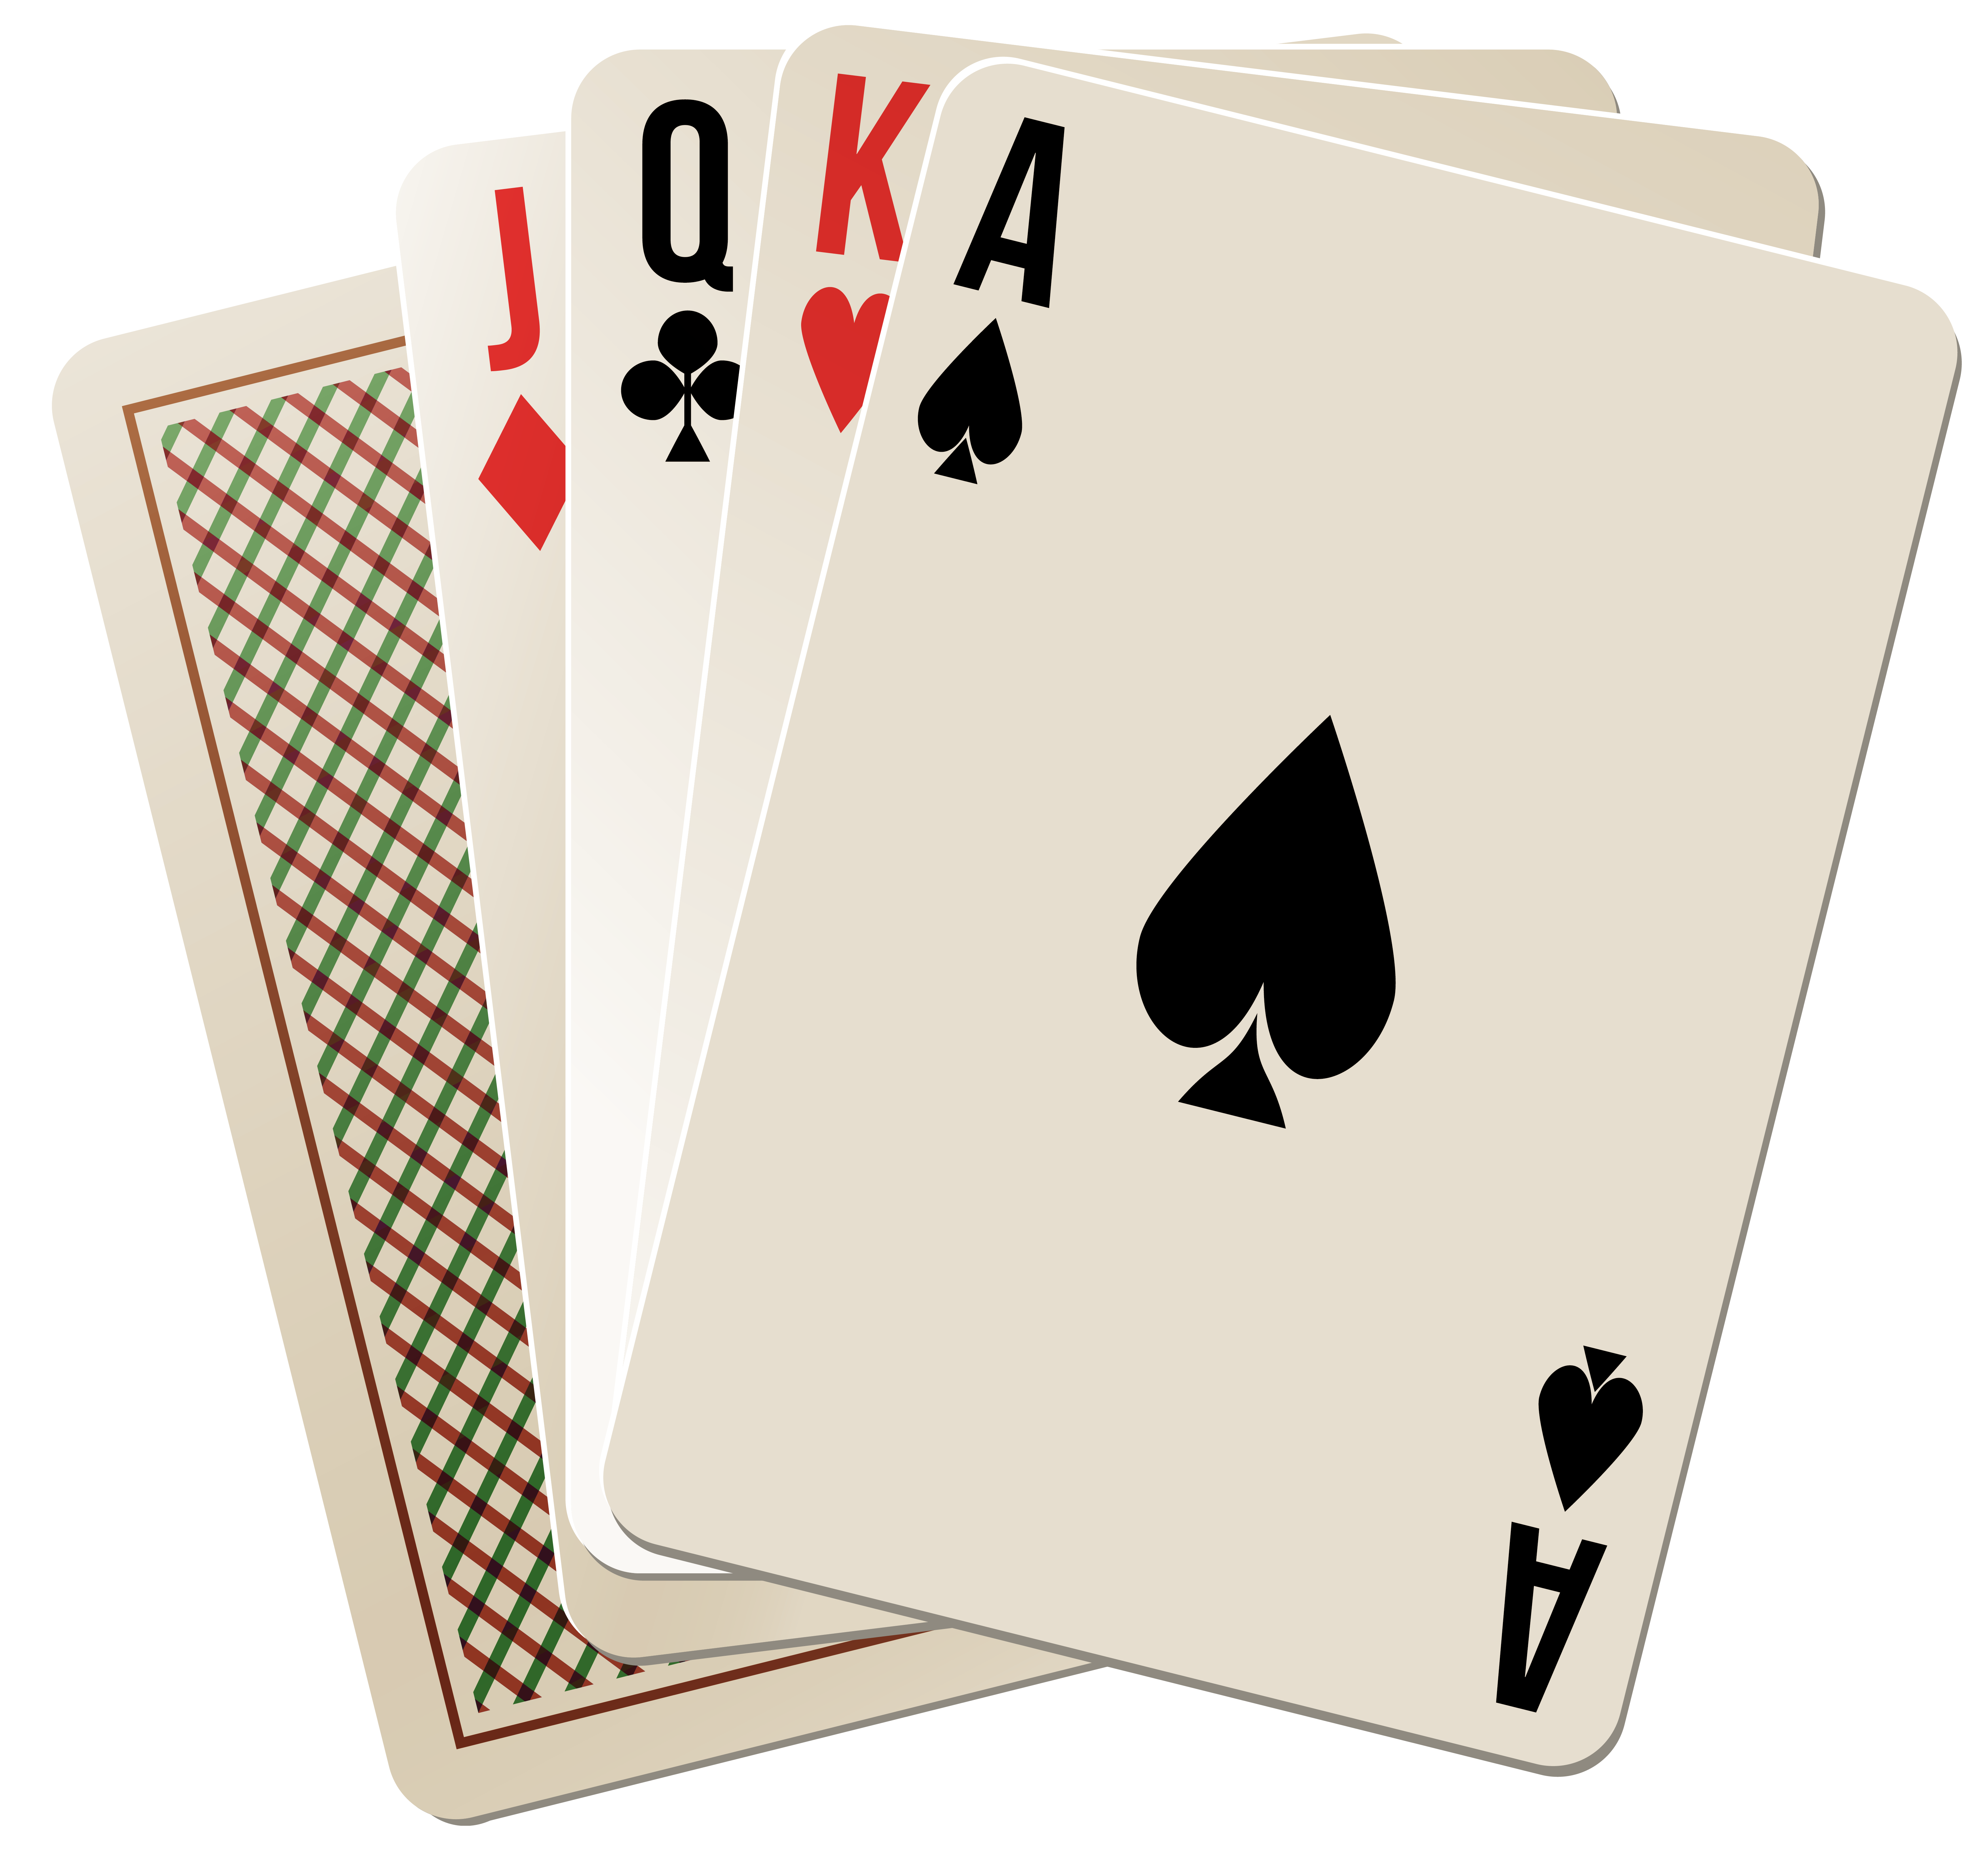 Full deck of cards png. Playing clipart best web